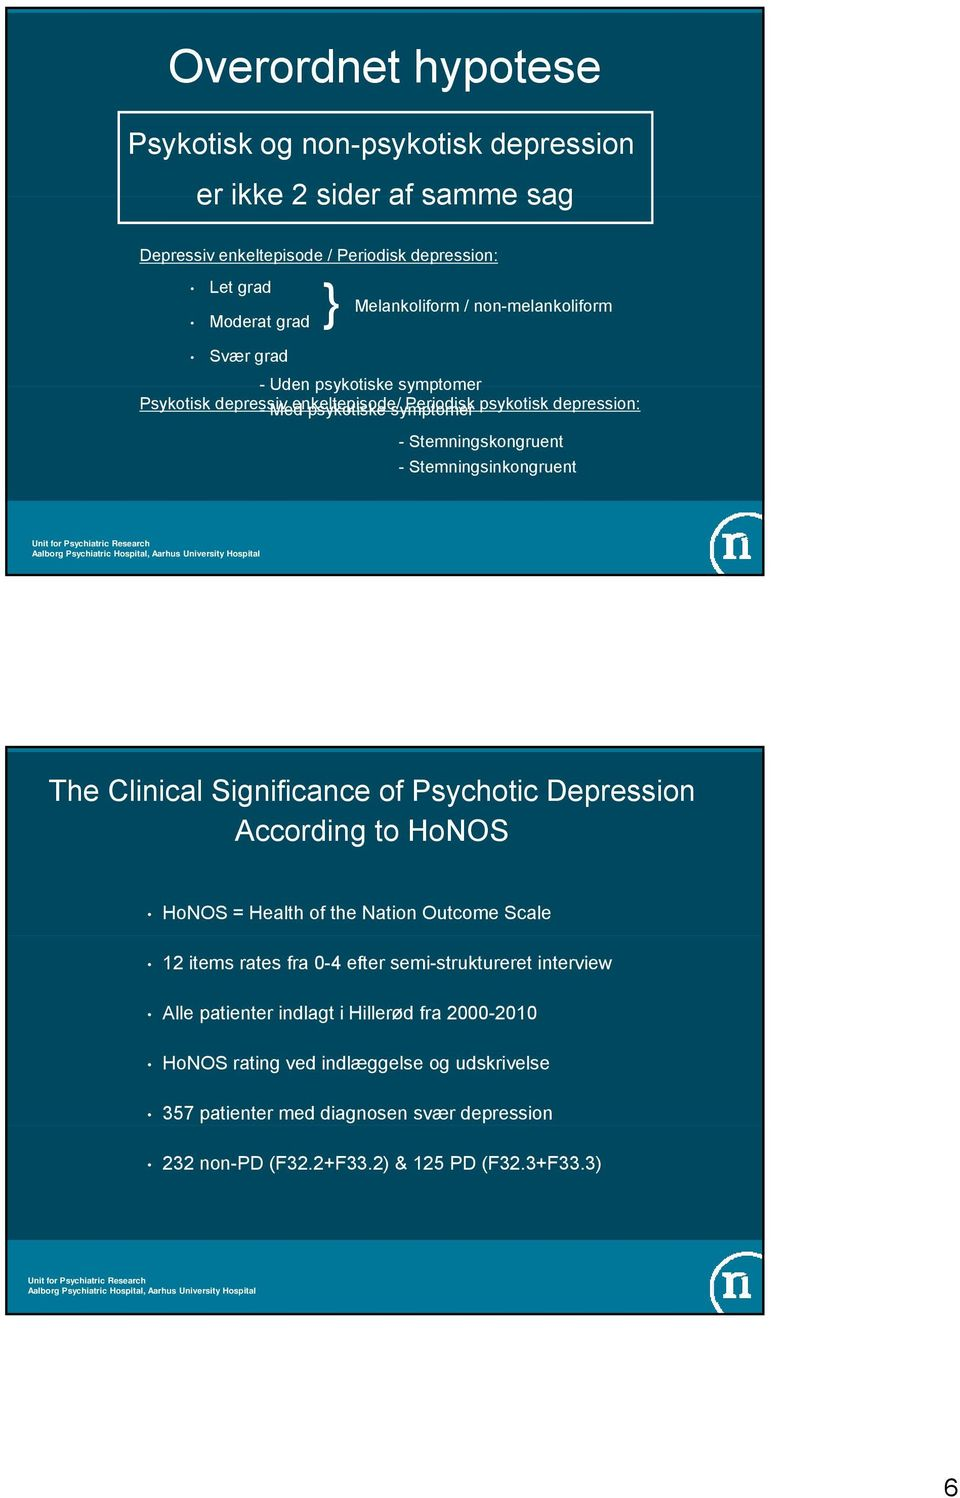 Stemningsinkongruent The Clinical Significance of Psychotic Depression According to HoNOS HoNOS = Health of the Nation Outcome Scale 12 items rates fra 0-4 efter semi-struktureret